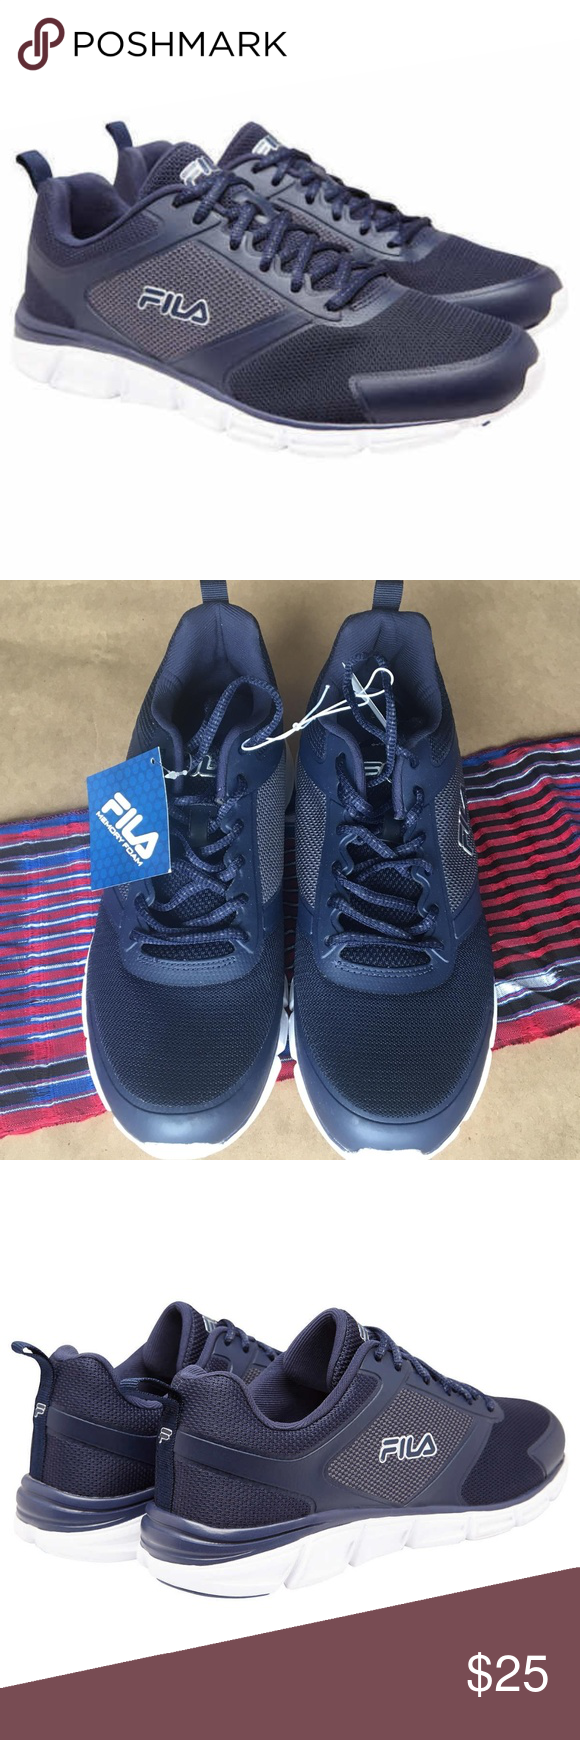 bb50d8ca3ad8 Fila Men s Memory Steelsprint Athletic Shoes Navy Move and flex freely with  these men s FILA Memory